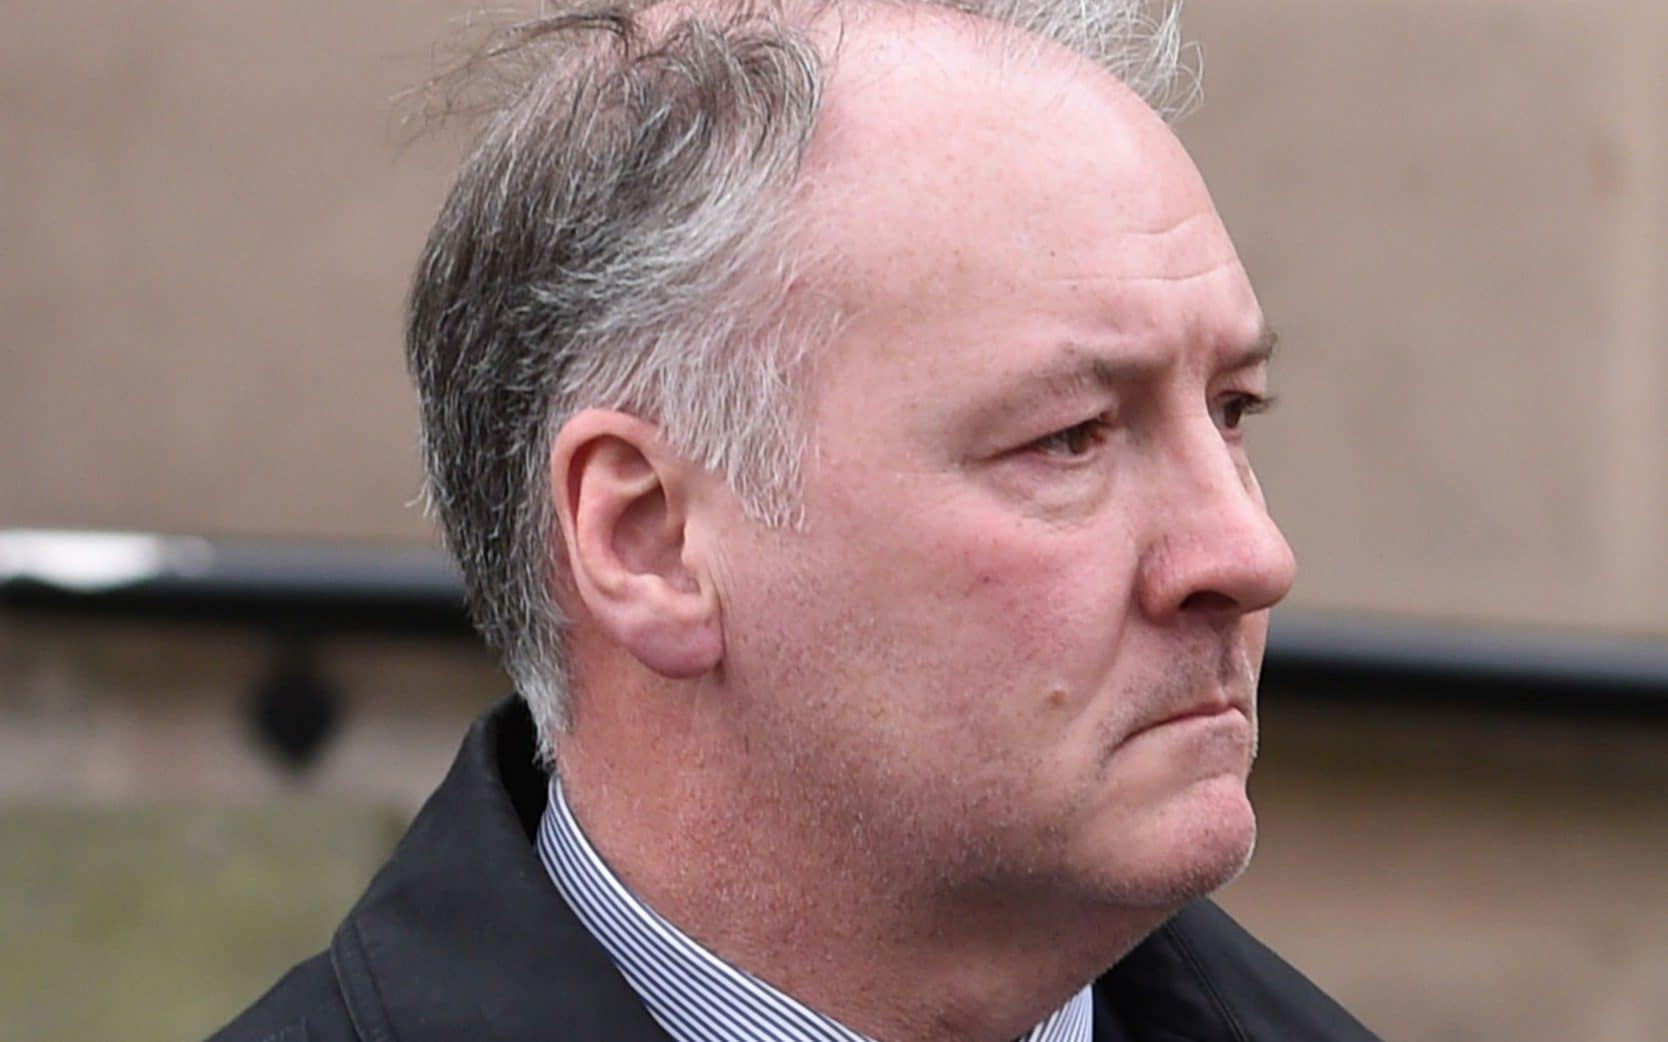 Earlier this year West Midlands surgeon Ian Paterson was jailed for 20 years after being convicted of deliberately performing unnecessary and incompetent operations on 10 patients